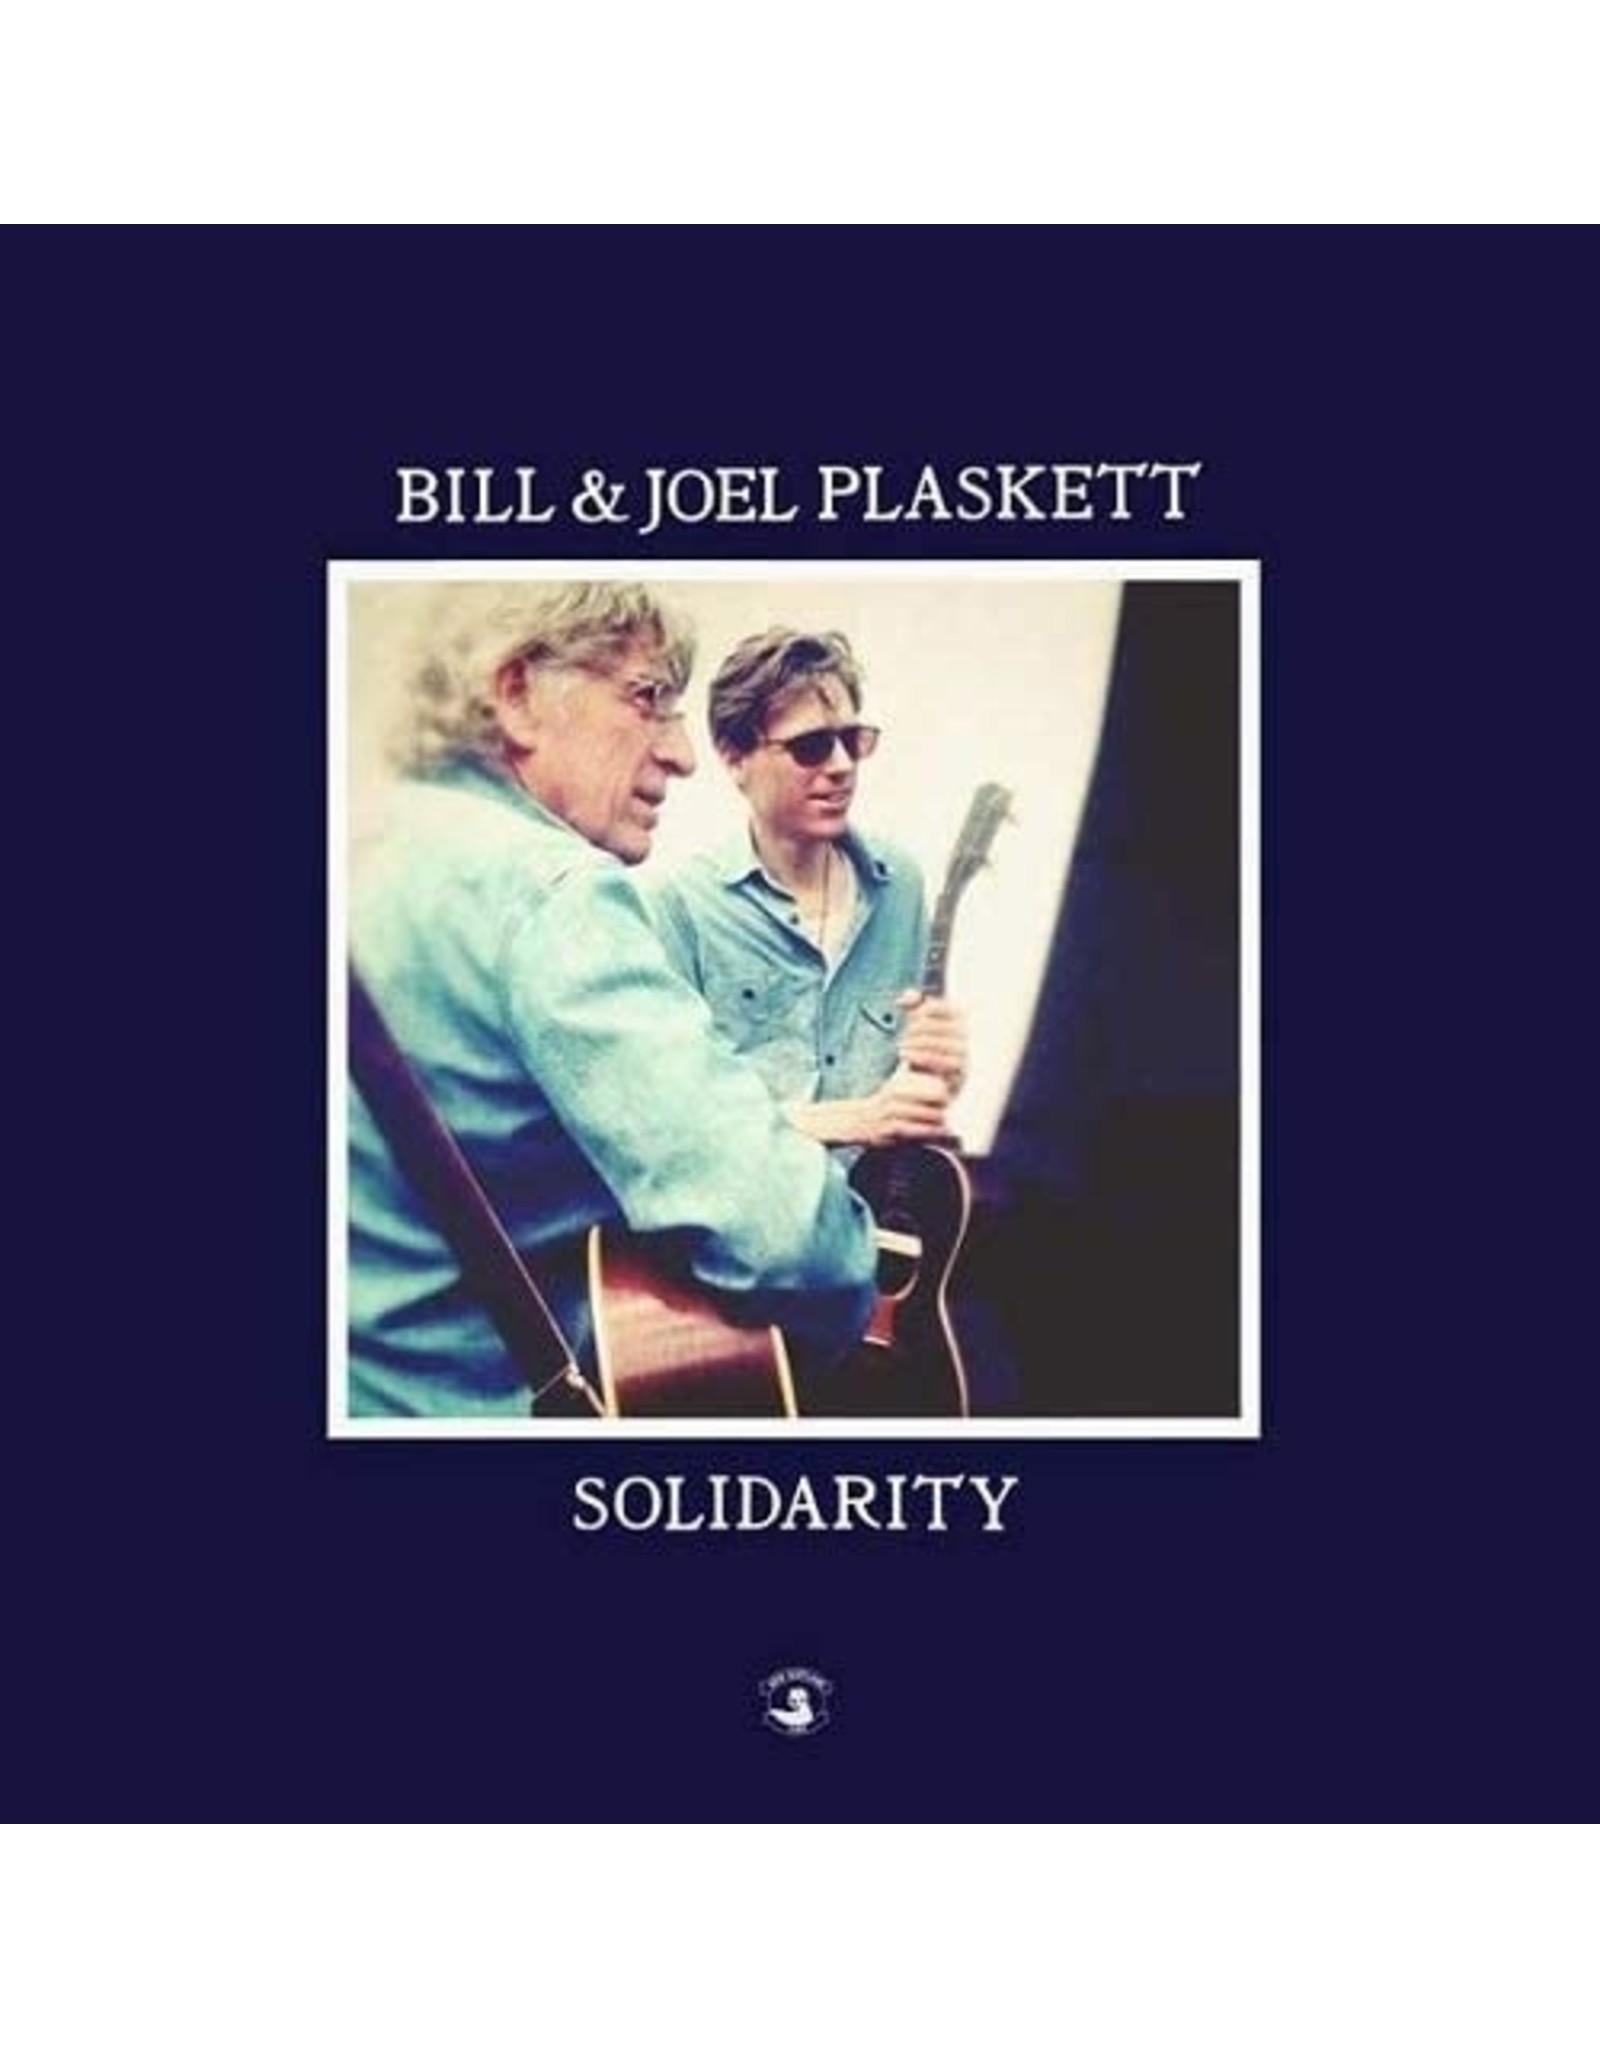 Bill & Joe Plaskett - Solidarity